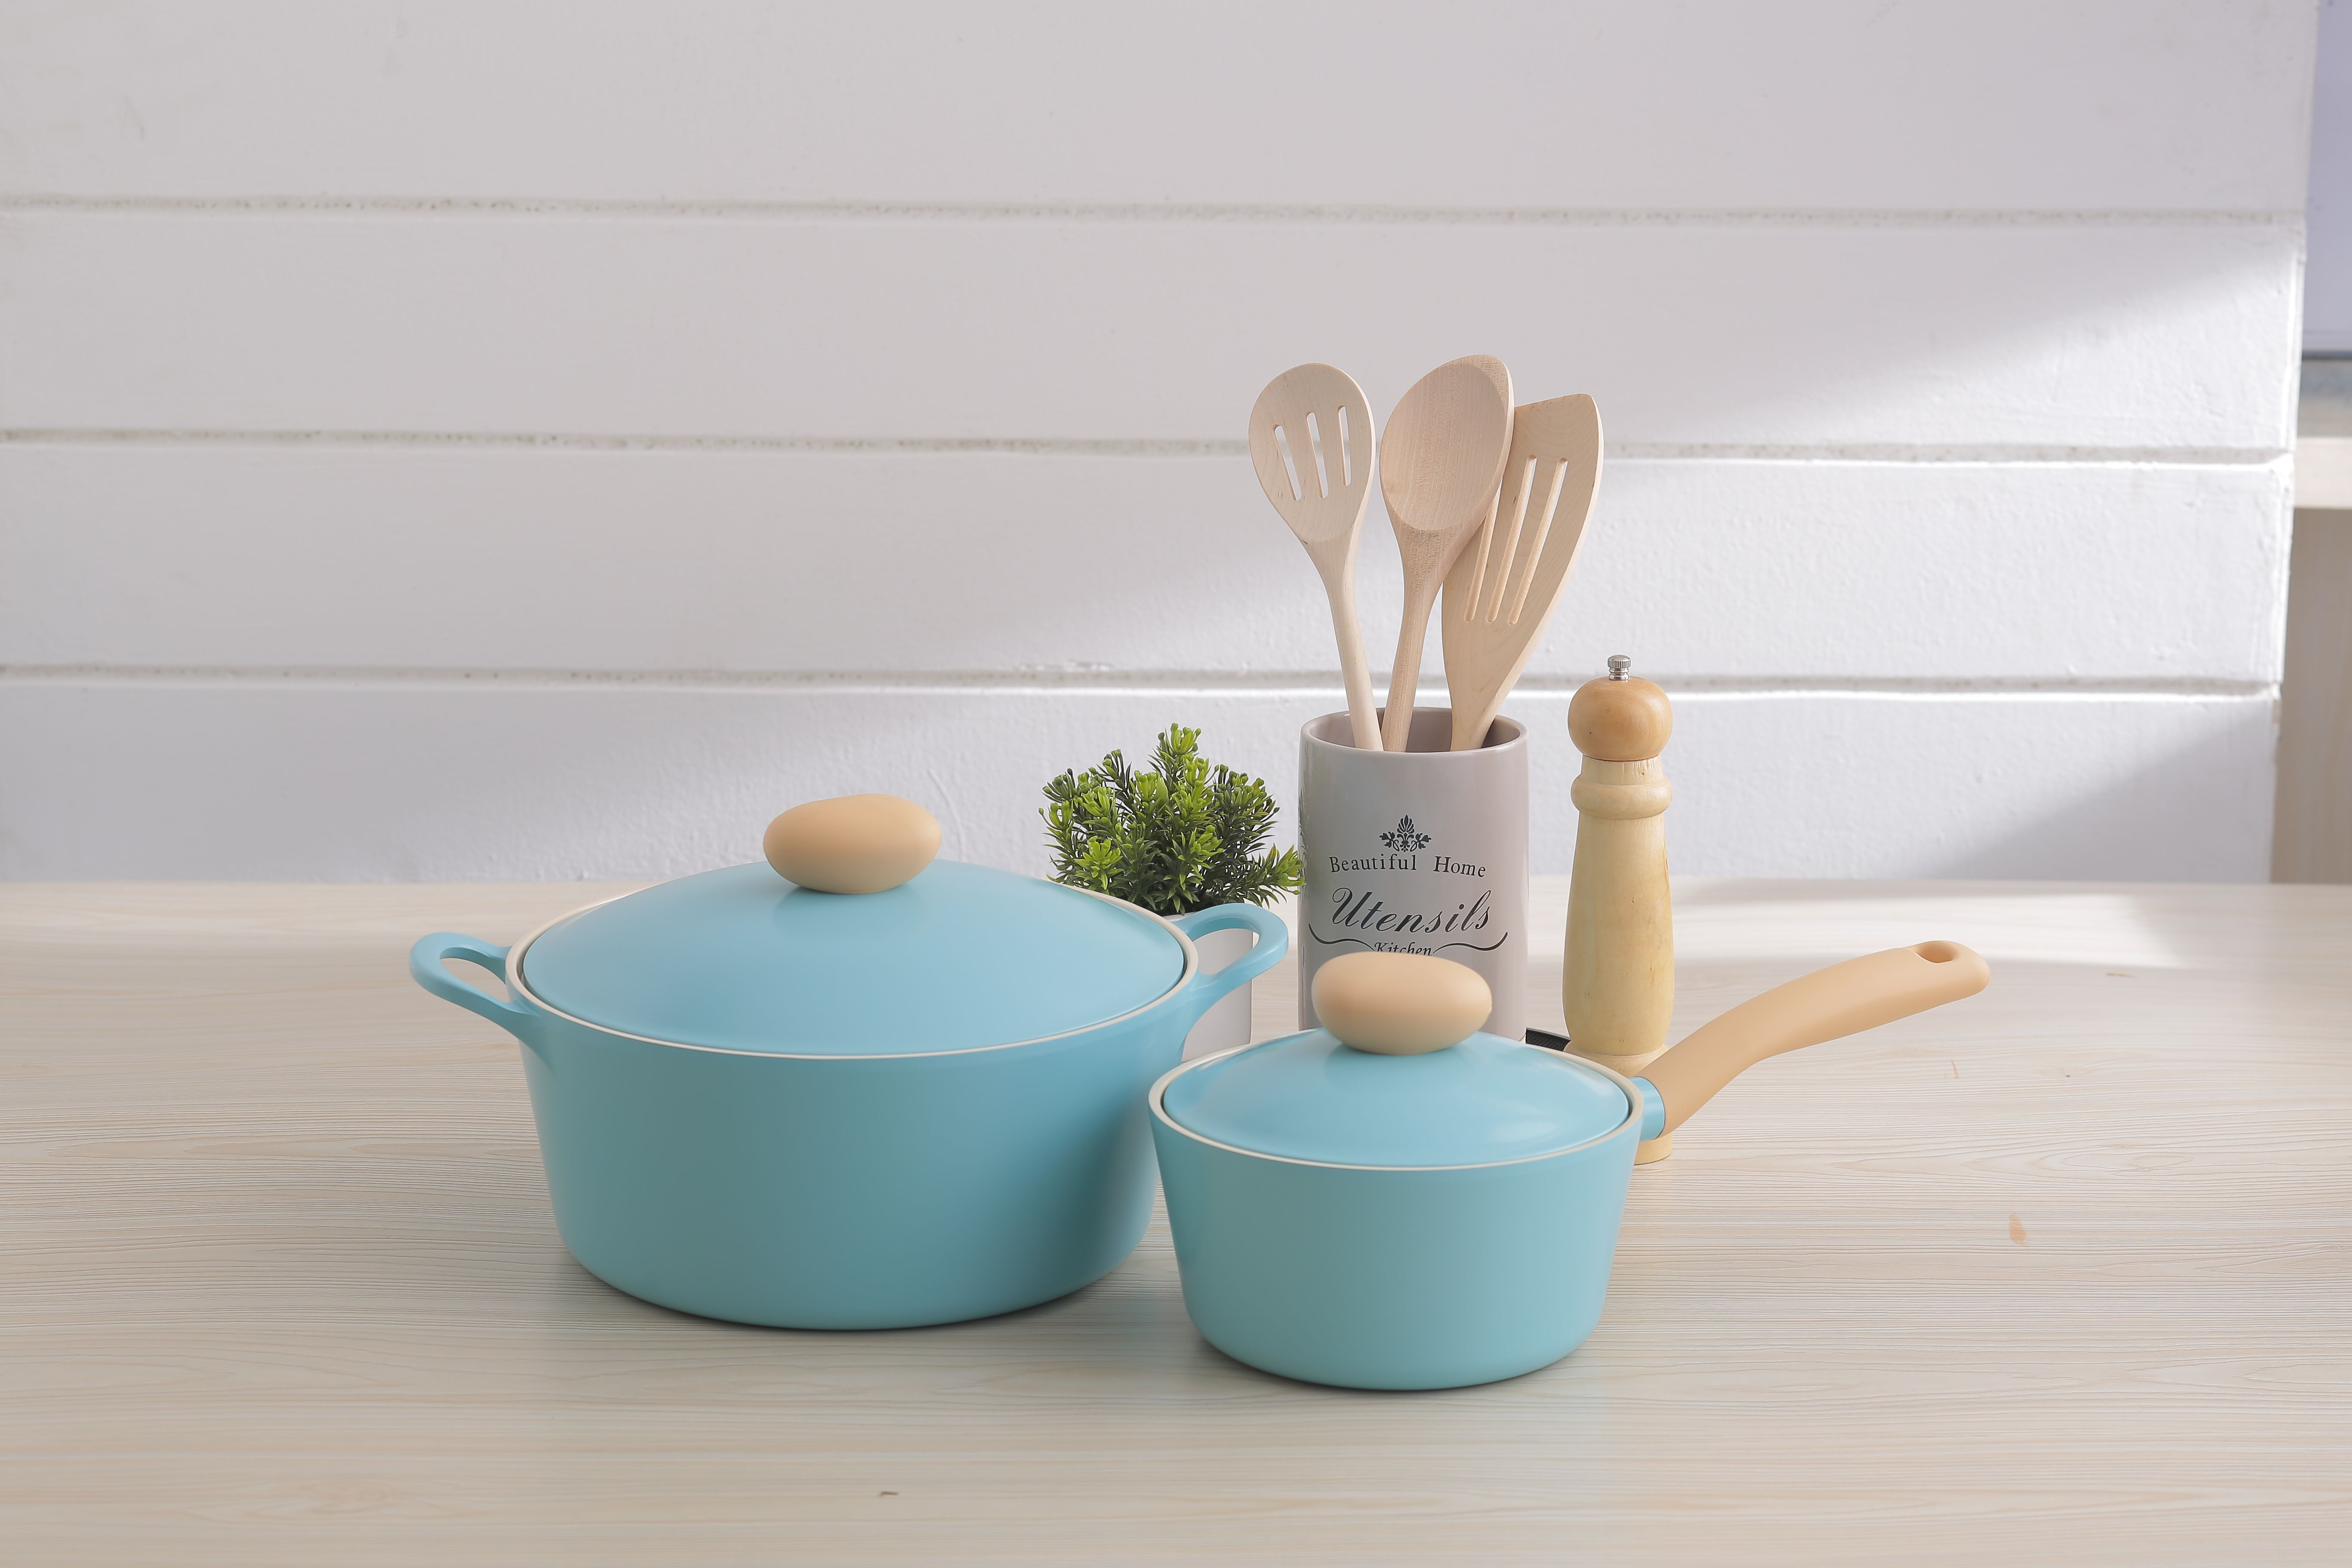 Neoflam Retro 26cm Casserole and 18cm Sauce Pan | Kitchen Essentials ...